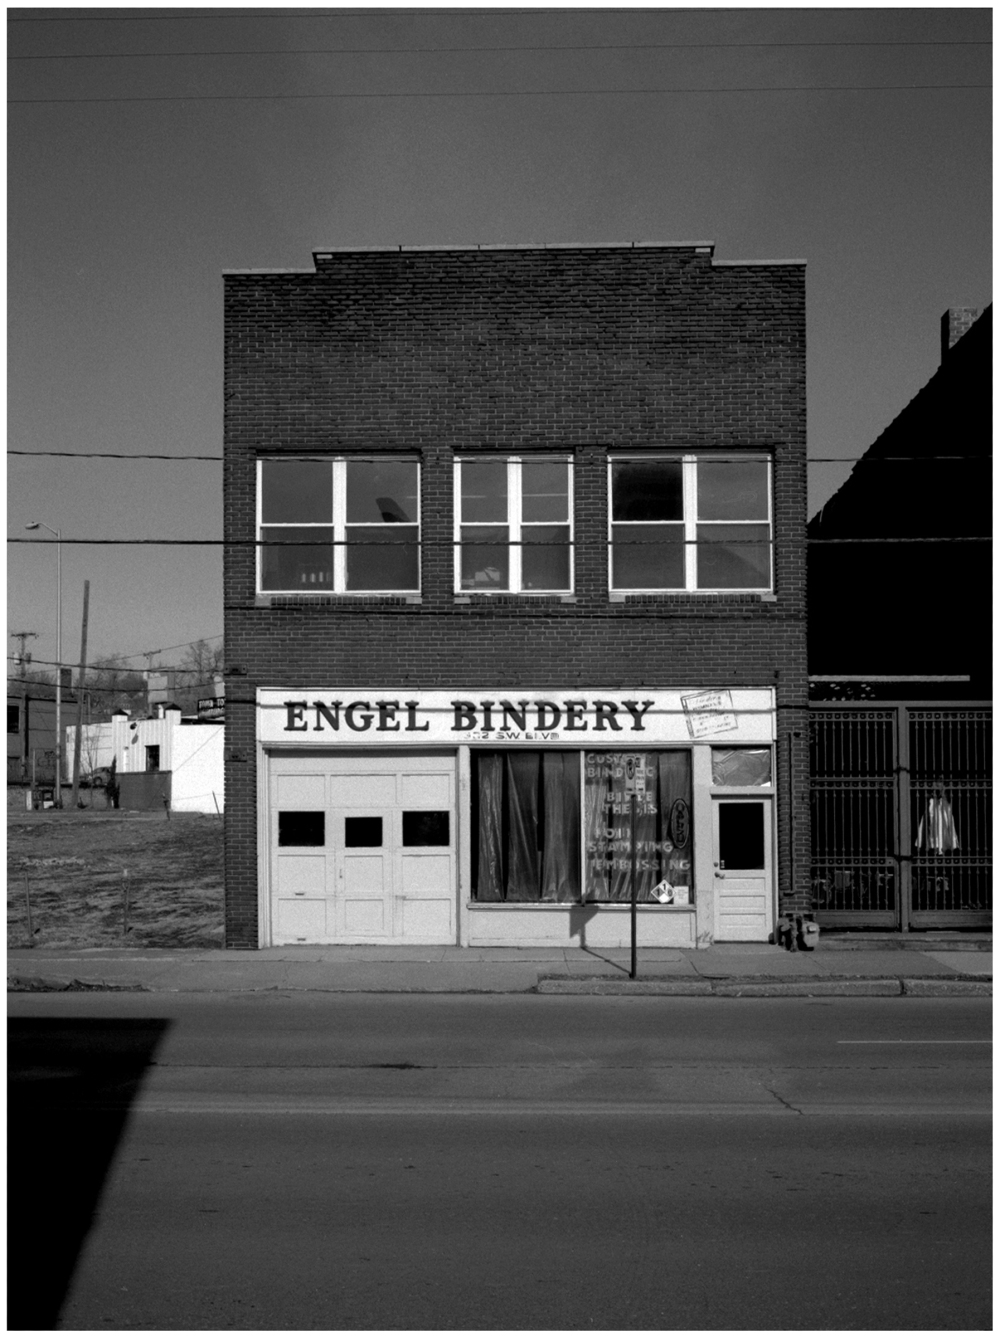 engel bindery - grant edwards photography